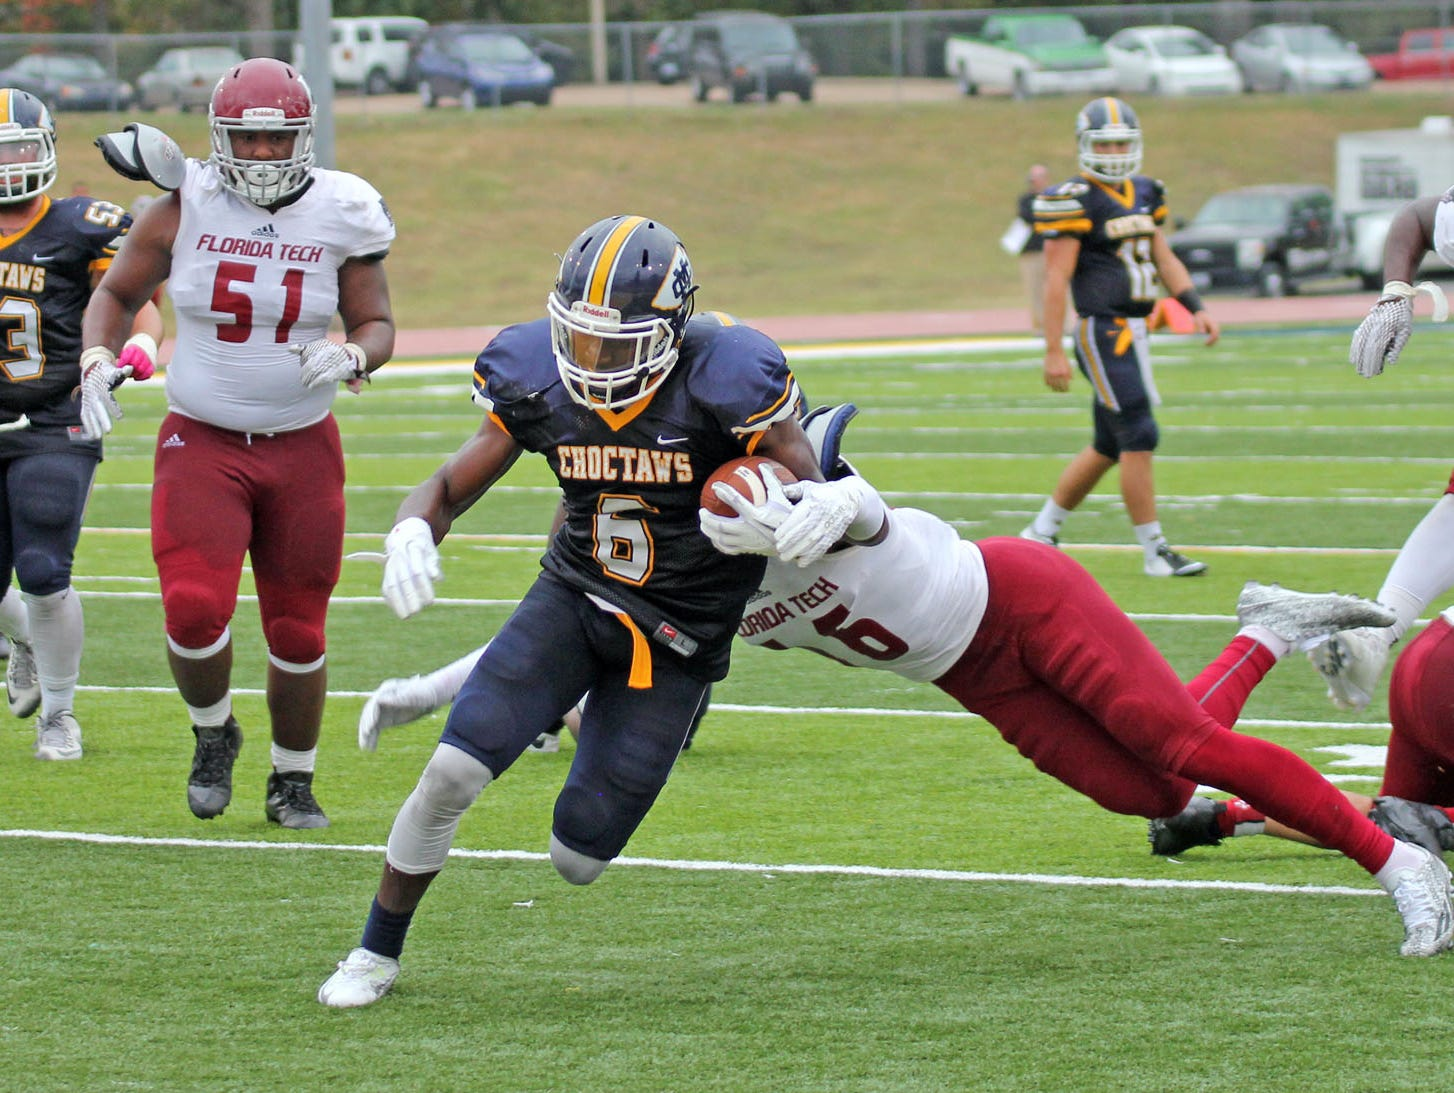 Marcel Newsom of Mississippi College runs for a touchdown earlier this season. He is the school's C Spire Conerly Trophy nominee.